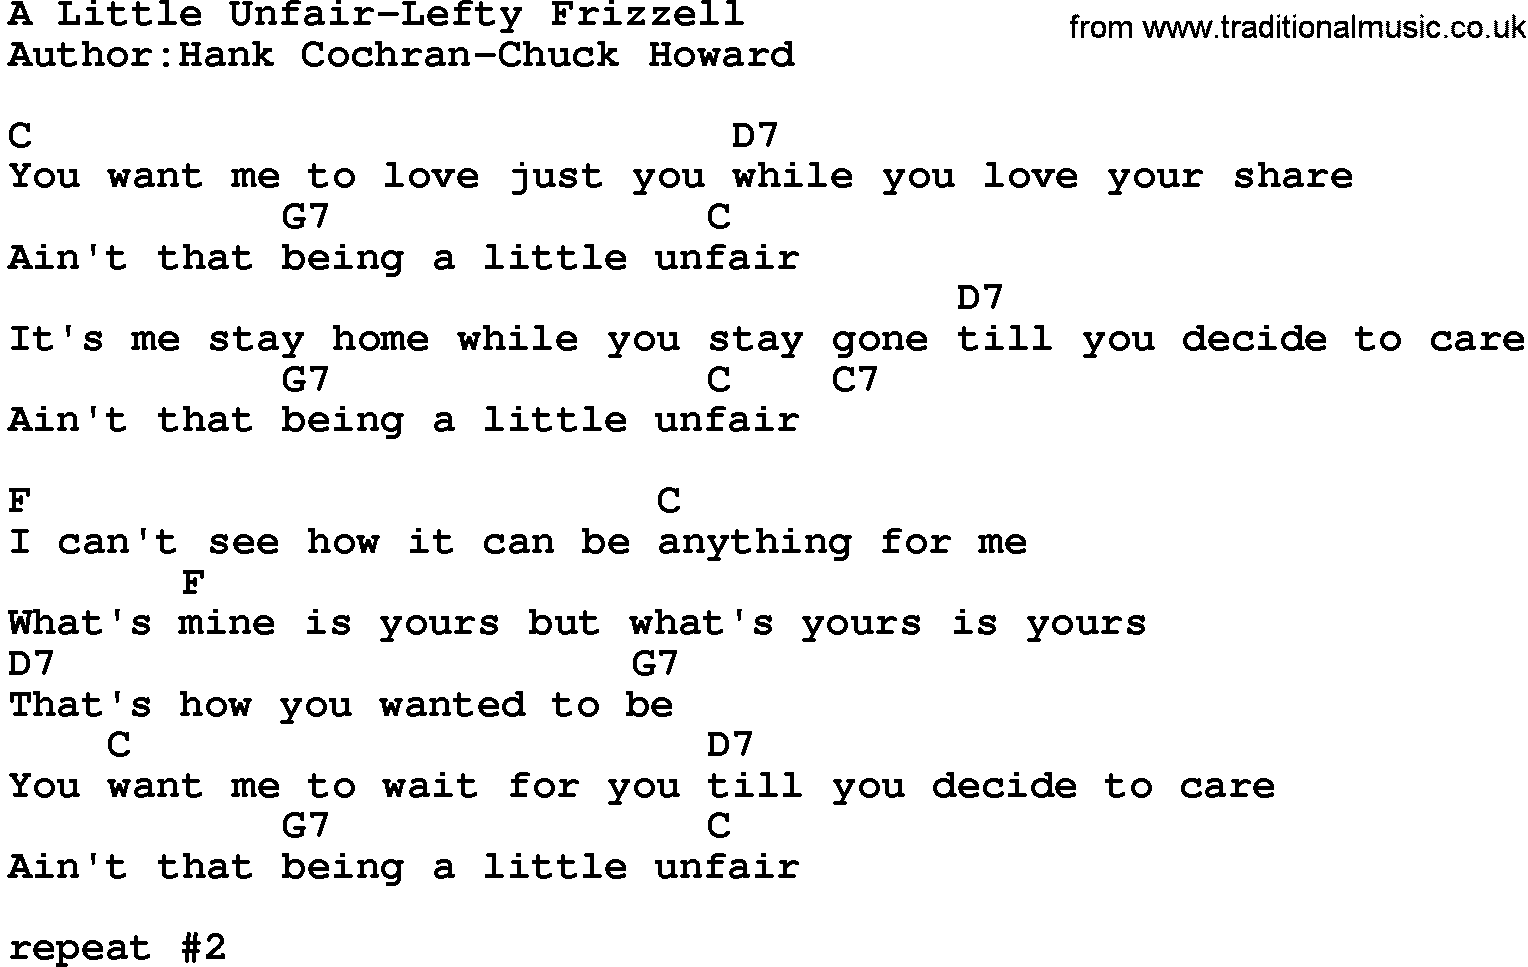 Country musica little unfair lefty frizzell lyrics and chords hexwebz Choice Image